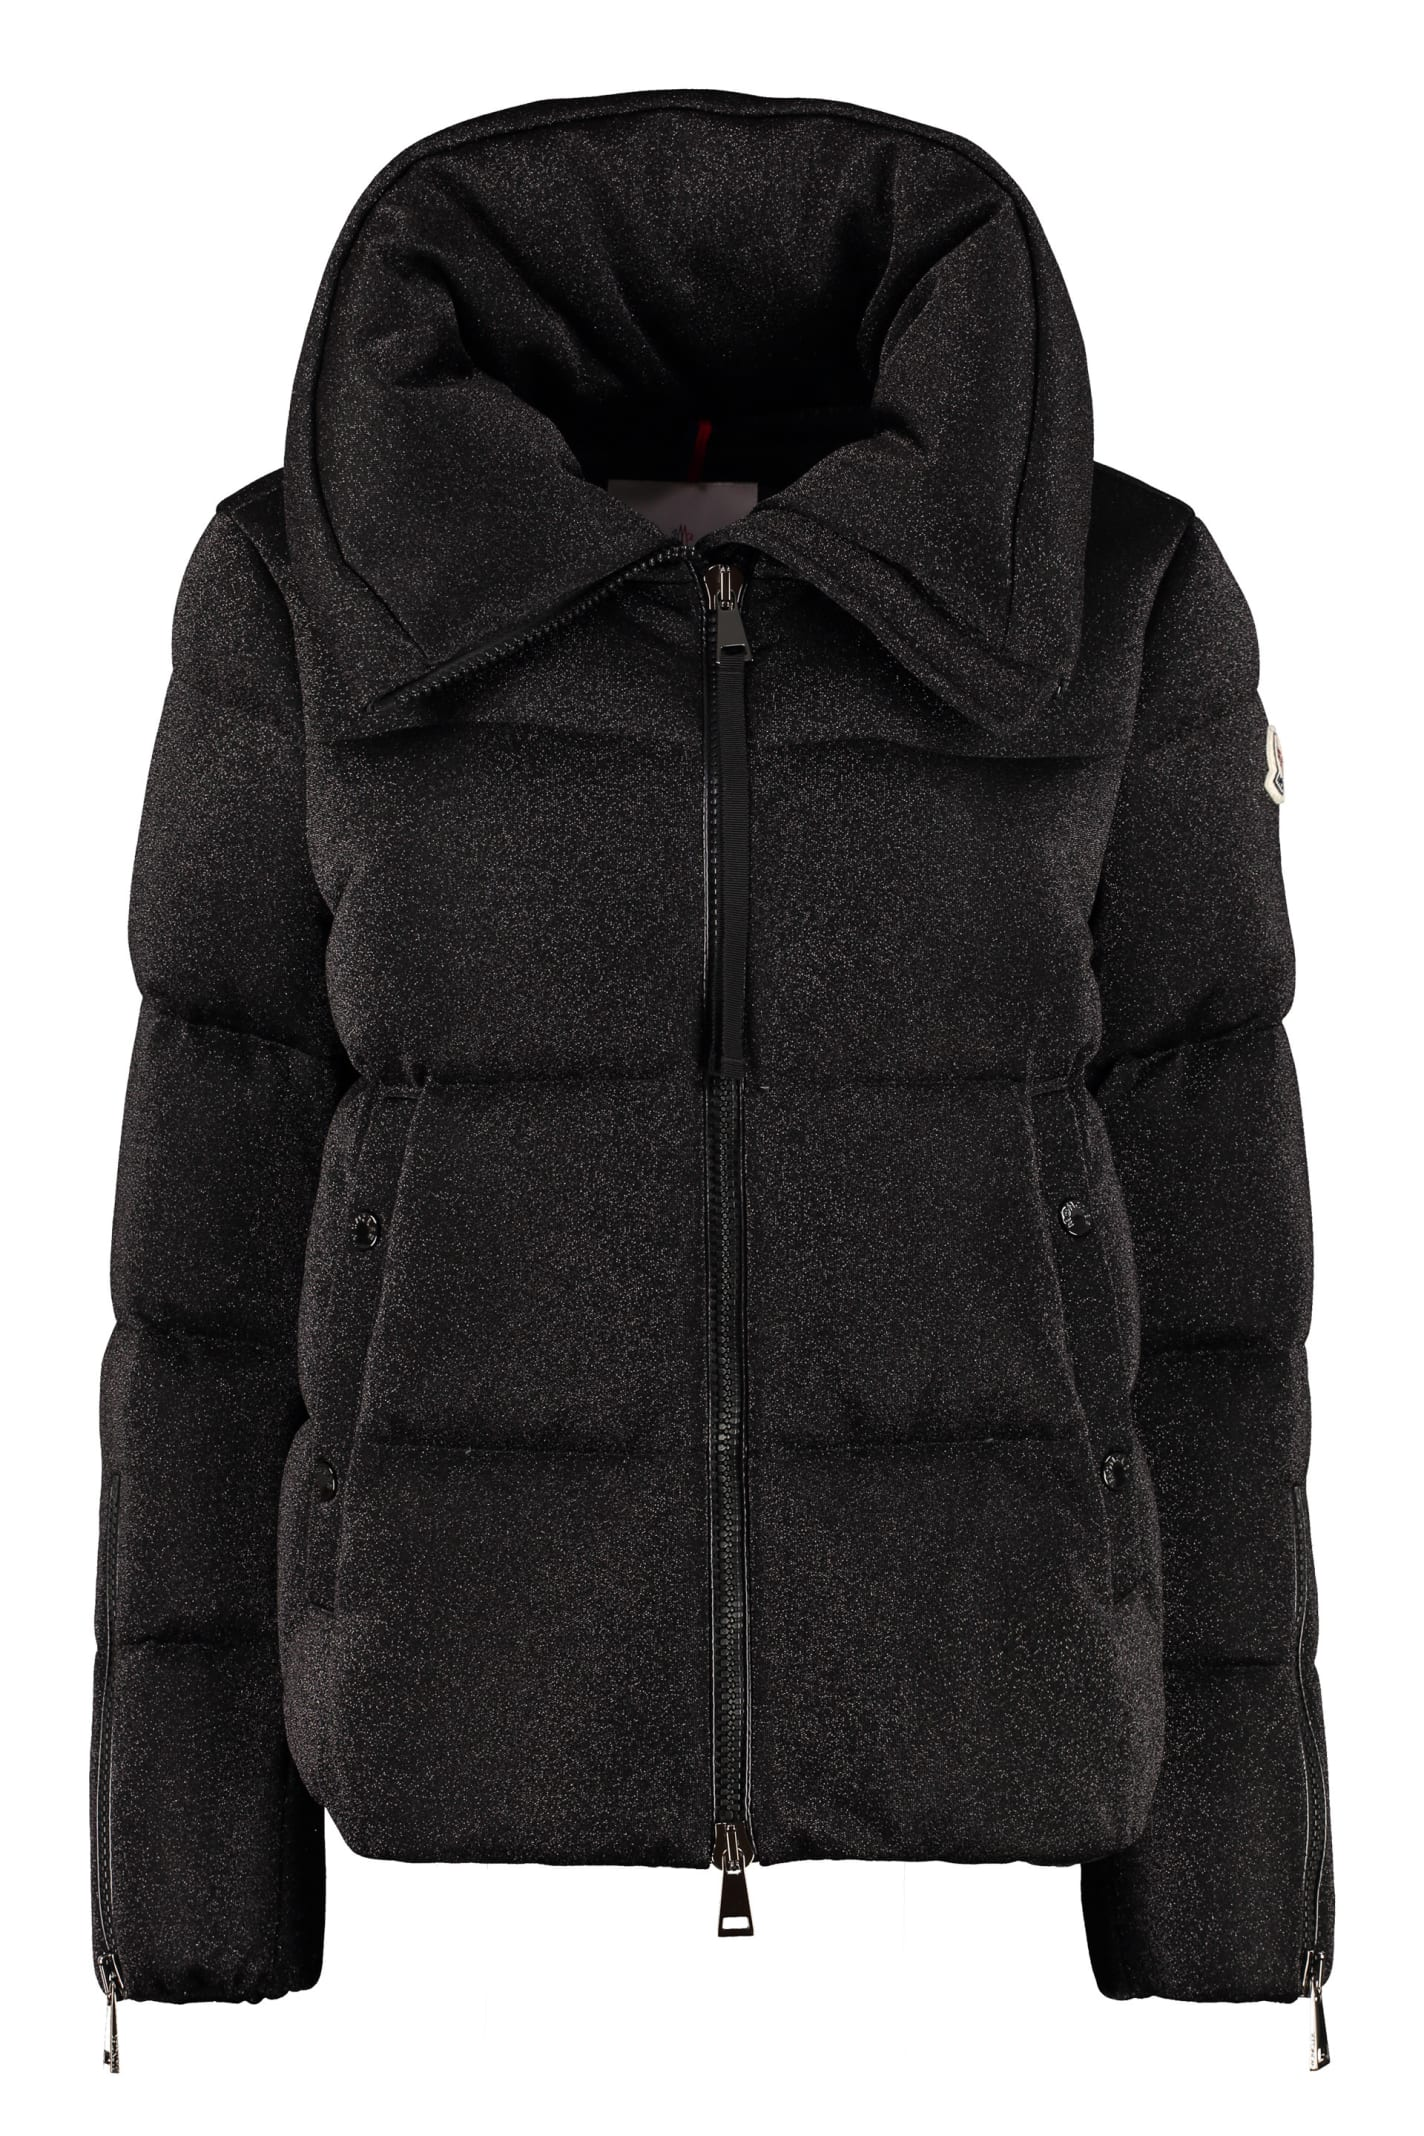 Moncler Bandama Full Zip Padded Jacket